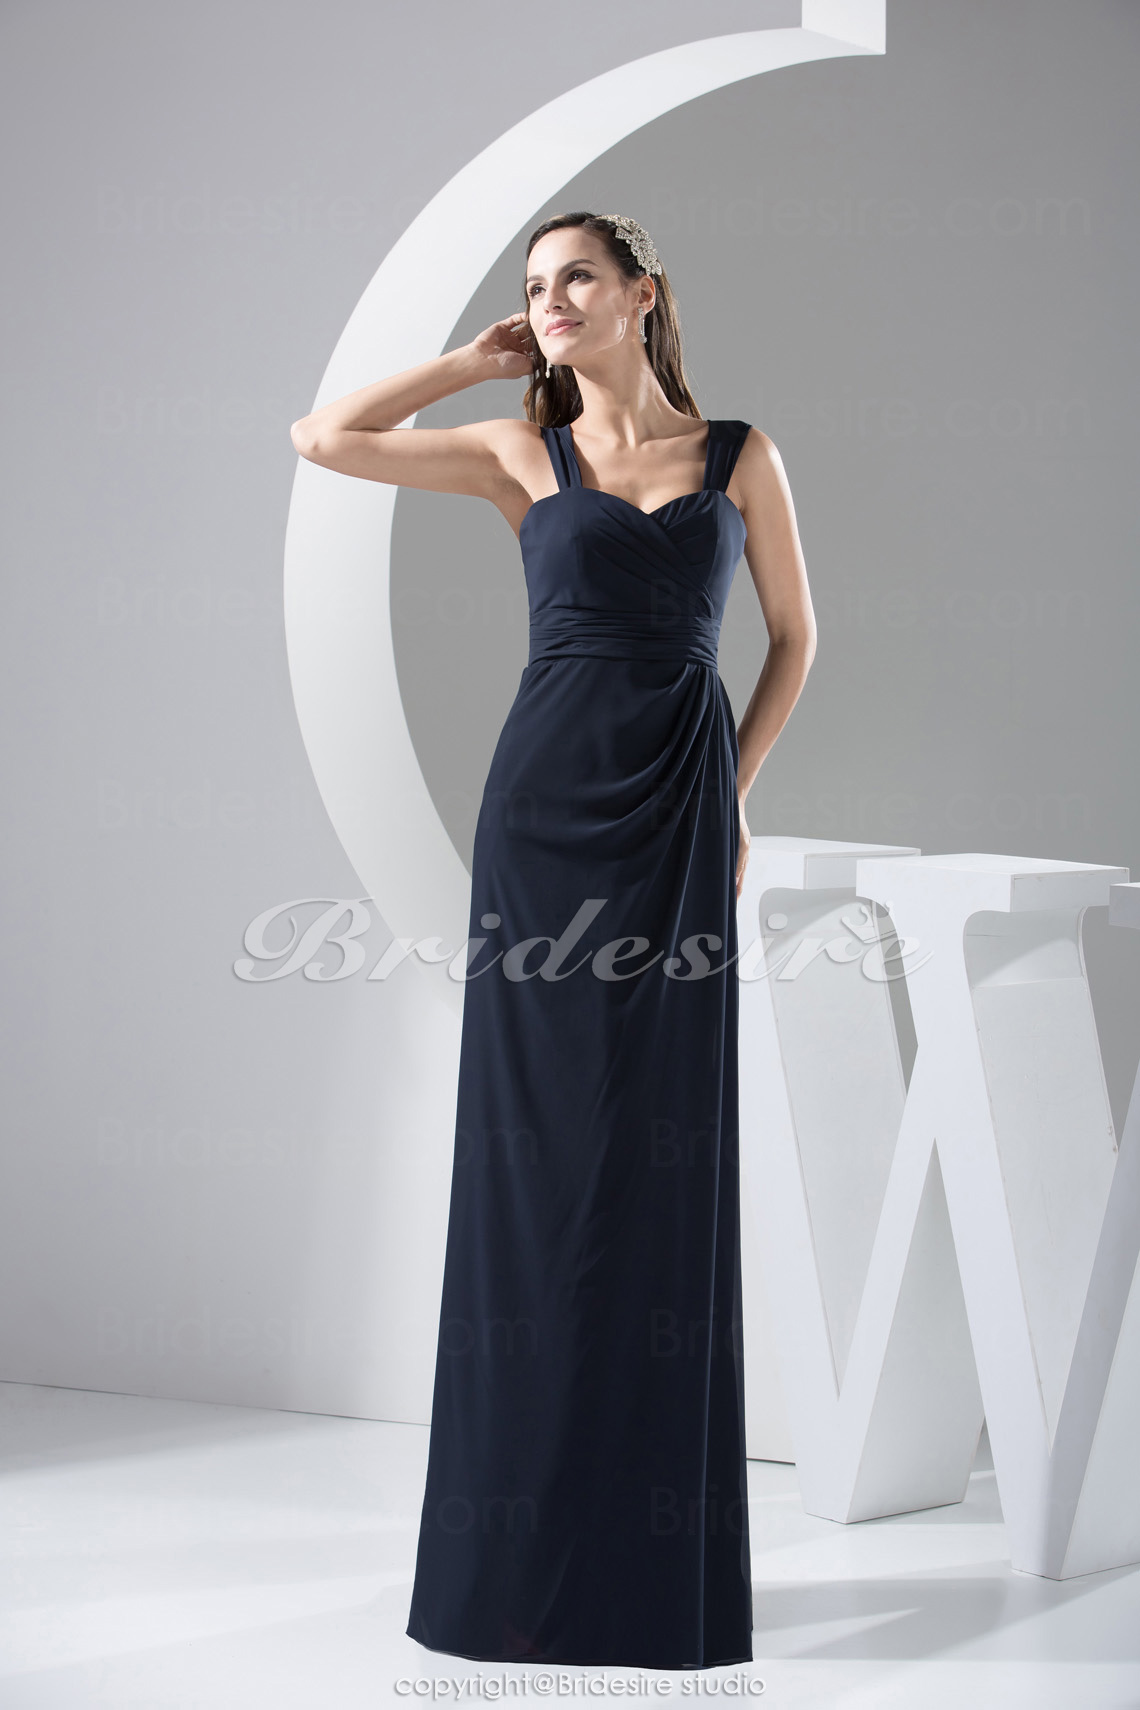 Sheath/Column Spaghetti Straps Floor-length Sleeveless Chiffon B